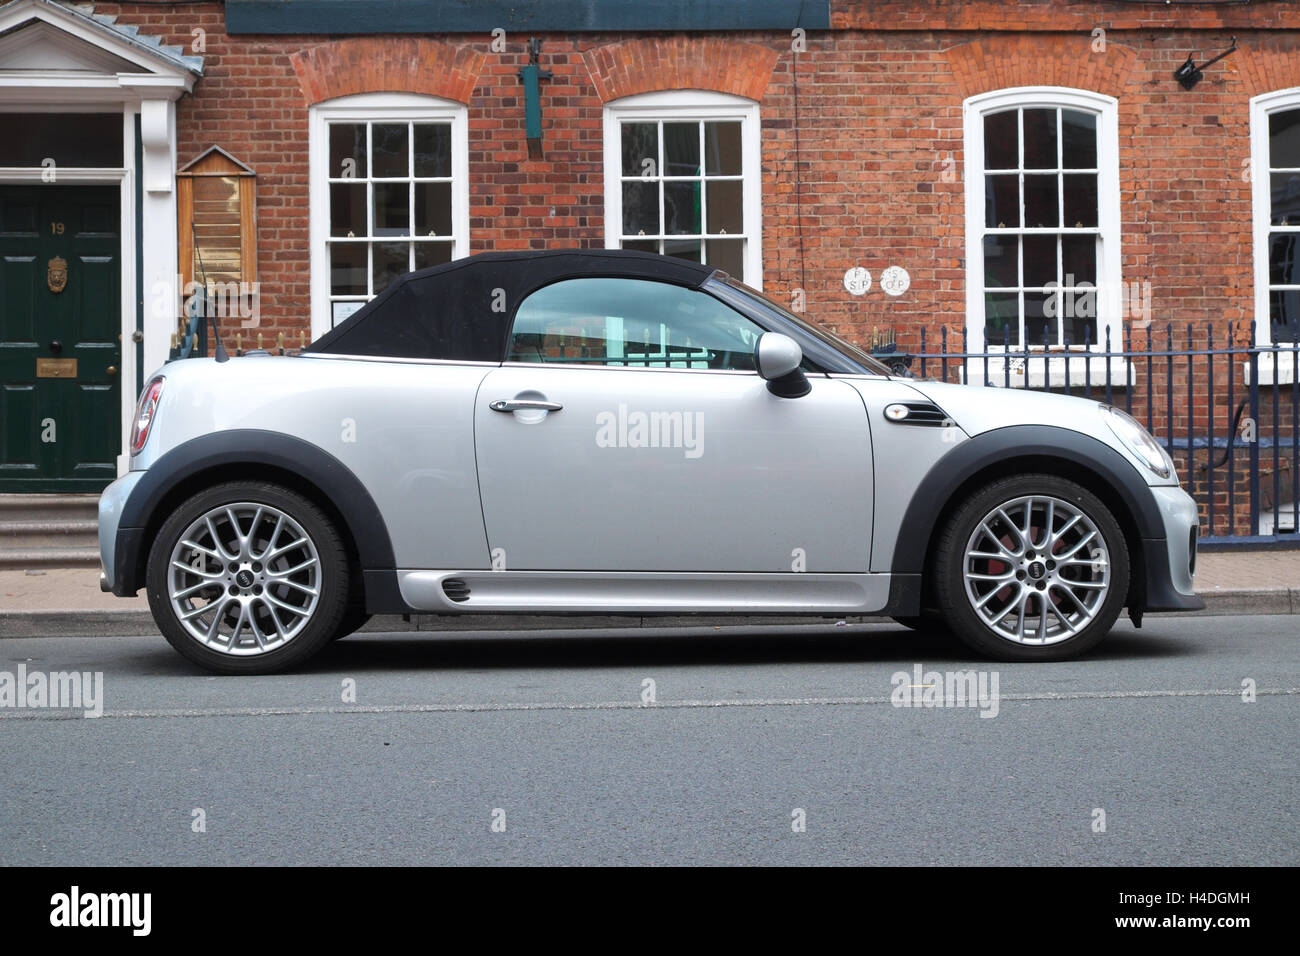 new car uk stock photos new car uk stock images alamy. Black Bedroom Furniture Sets. Home Design Ideas